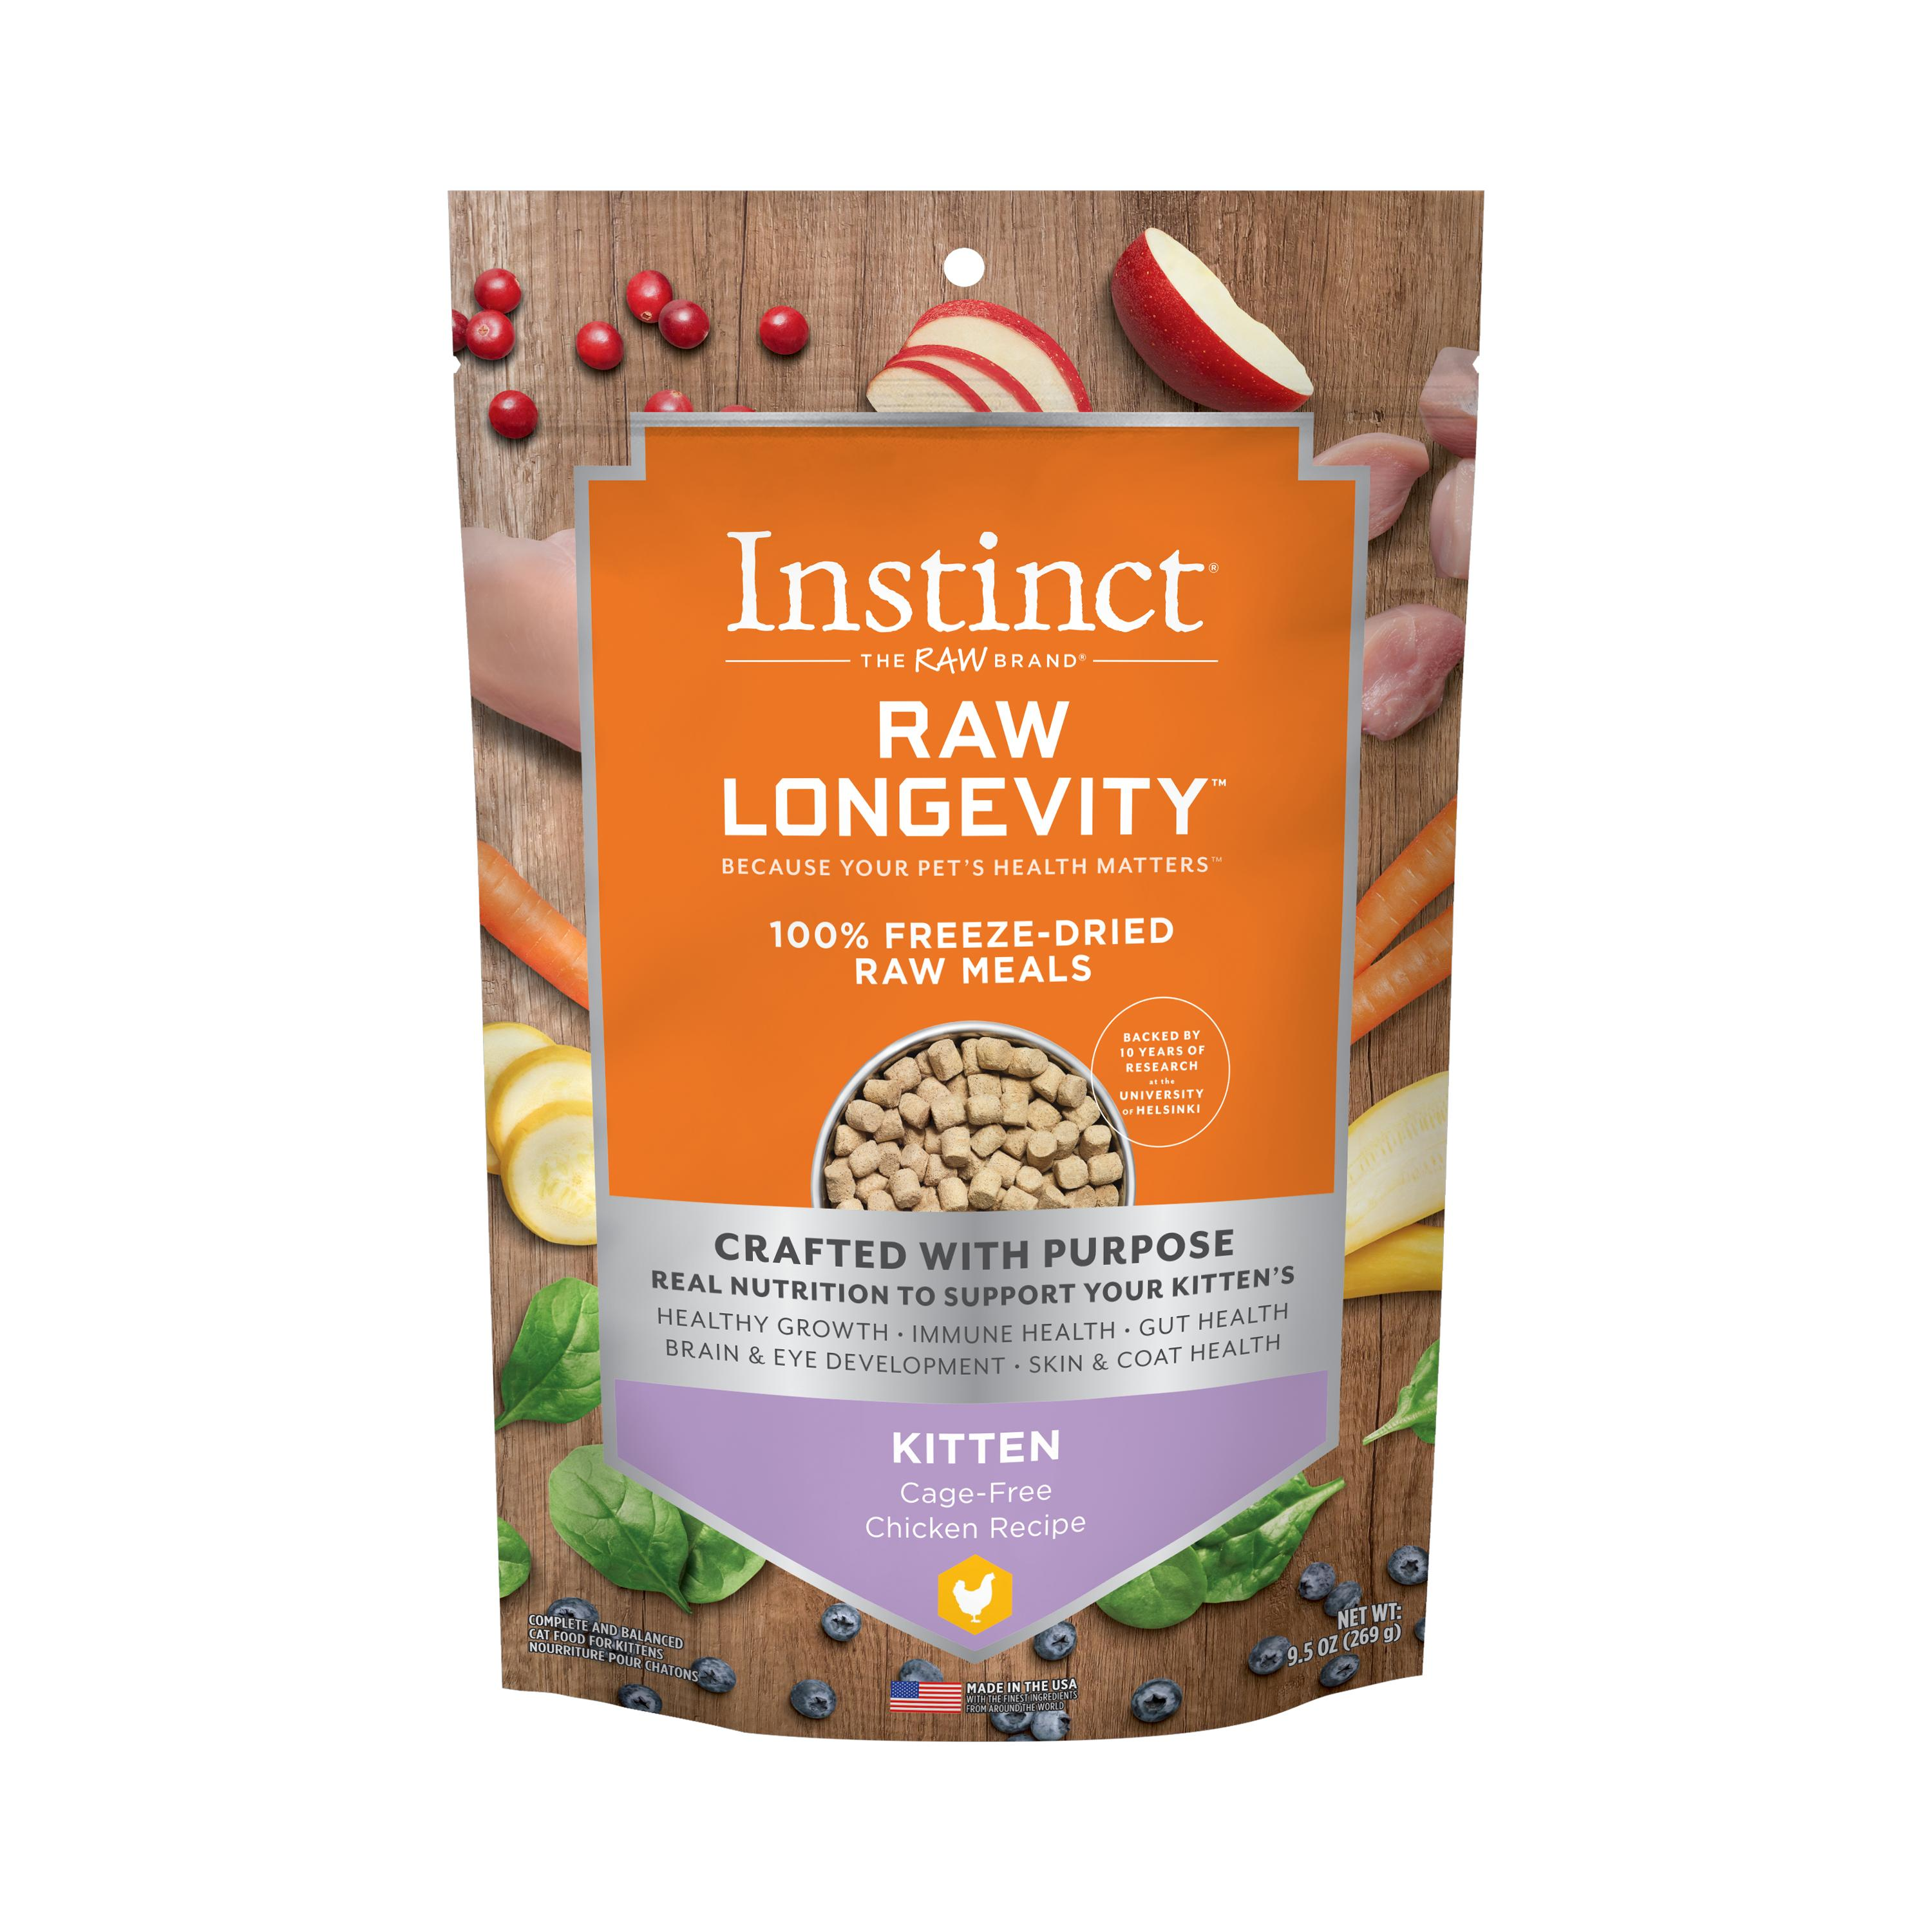 Instinct by Nature's Variety Raw Longevity Cage-Free Chicken Kitten 100% Freeze-Dried Cat Food, 9.5-oz